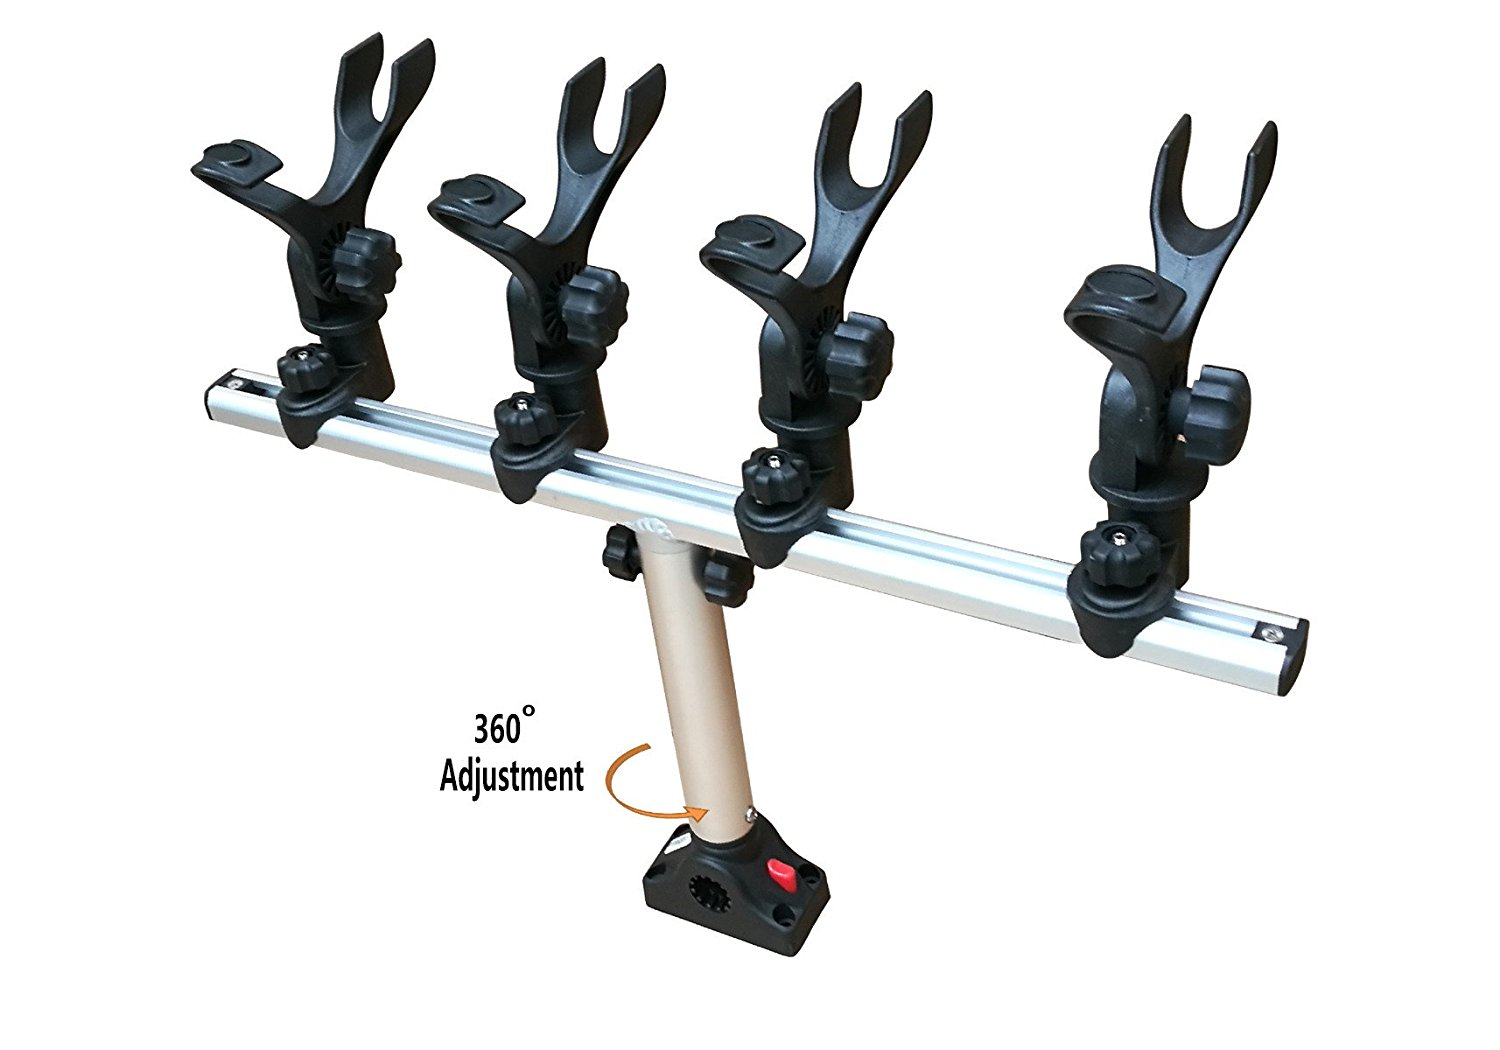 BroCraft Crappie Rod Holder System With Deck  Side Mount by